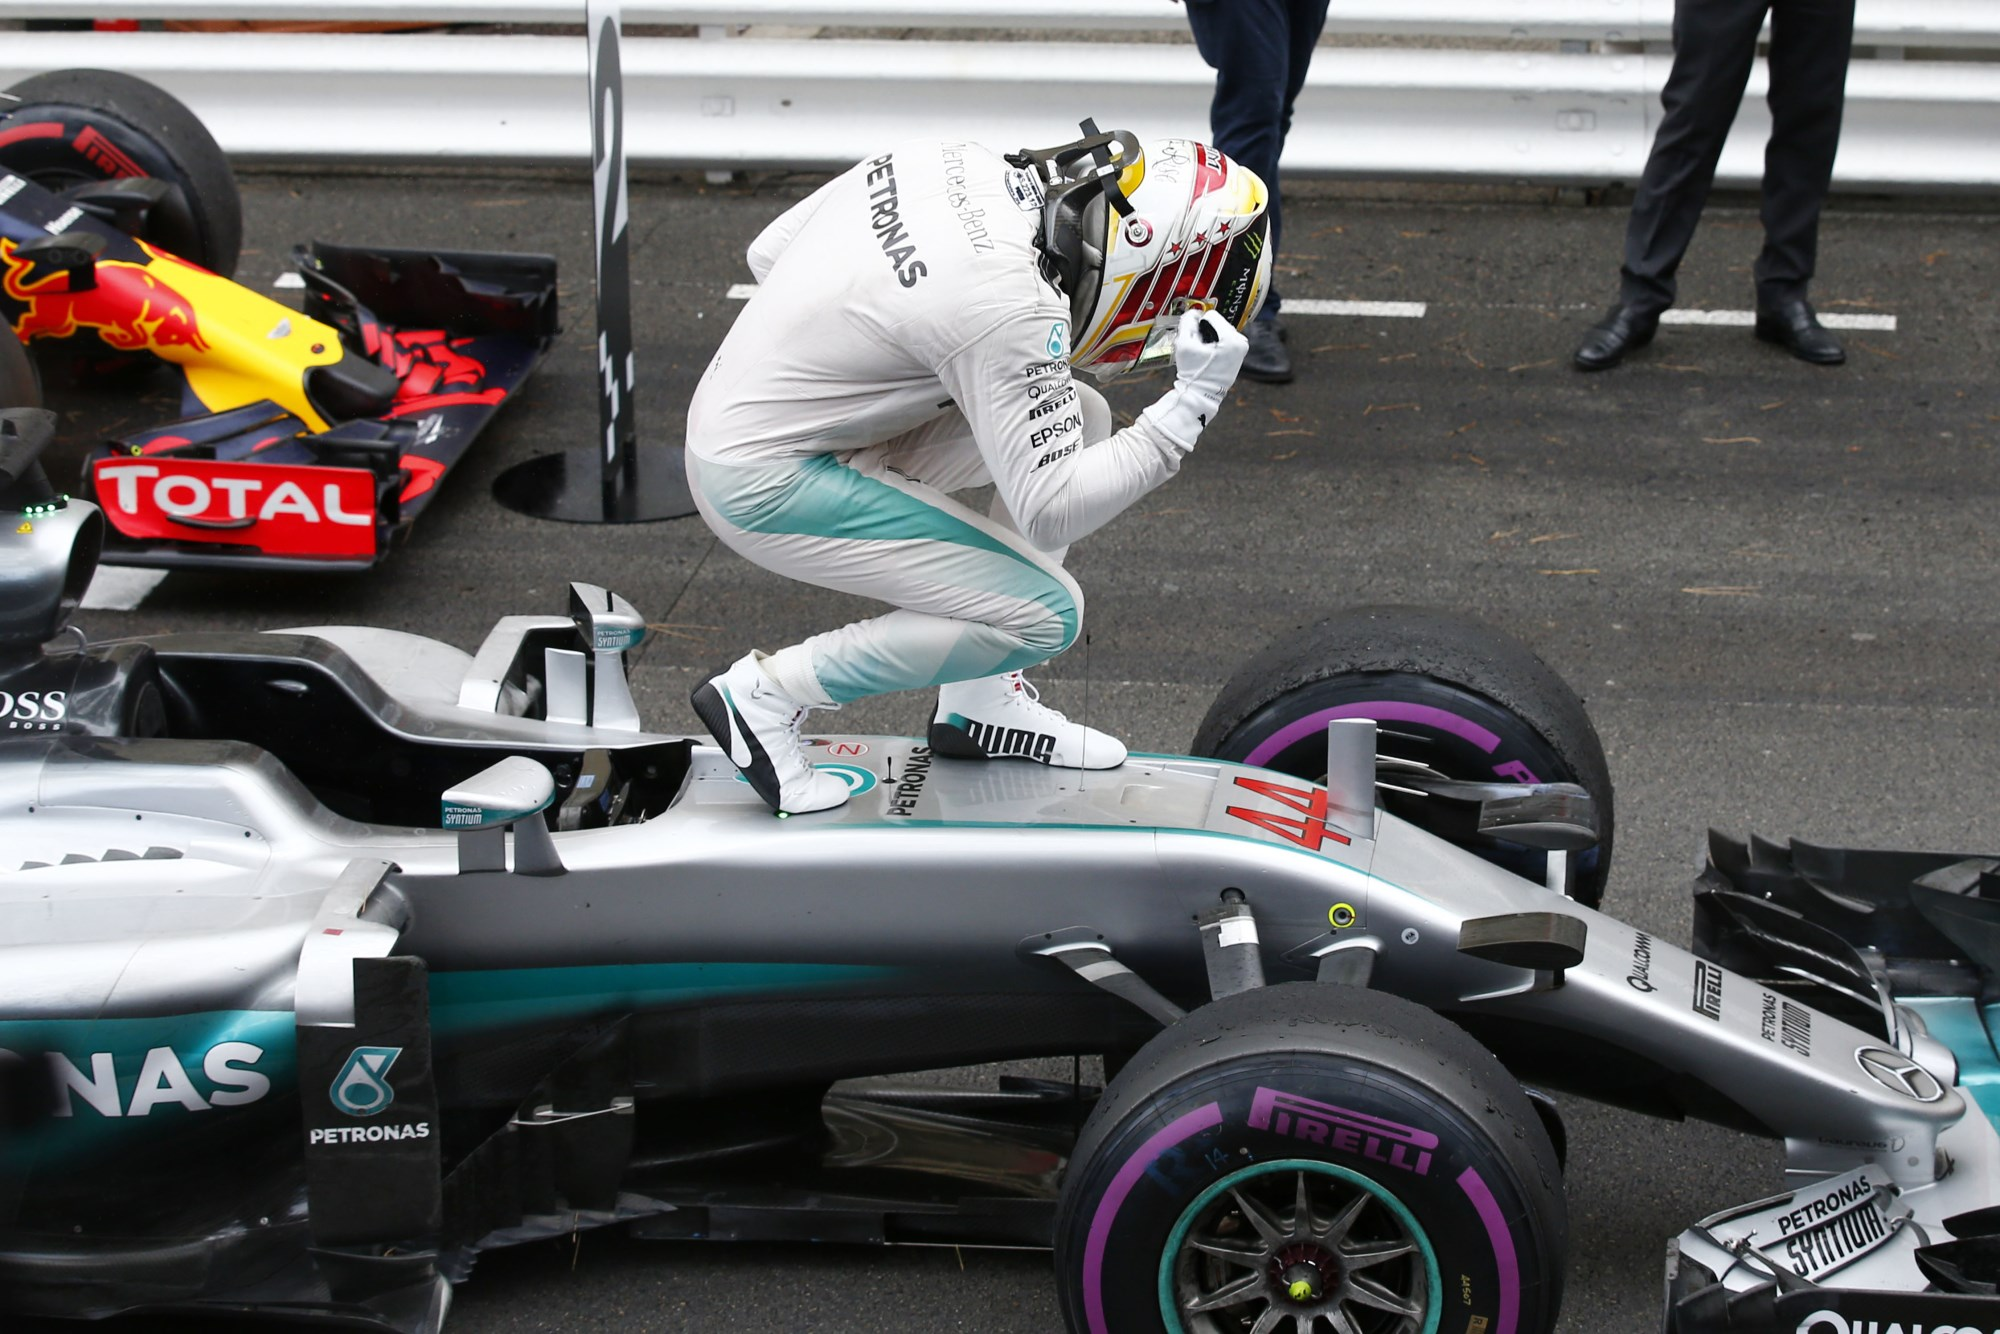 Lewis Hamilton Mercedes W07 Hybrid Monaco GP F1 2016 after race celebration Foto Daimler